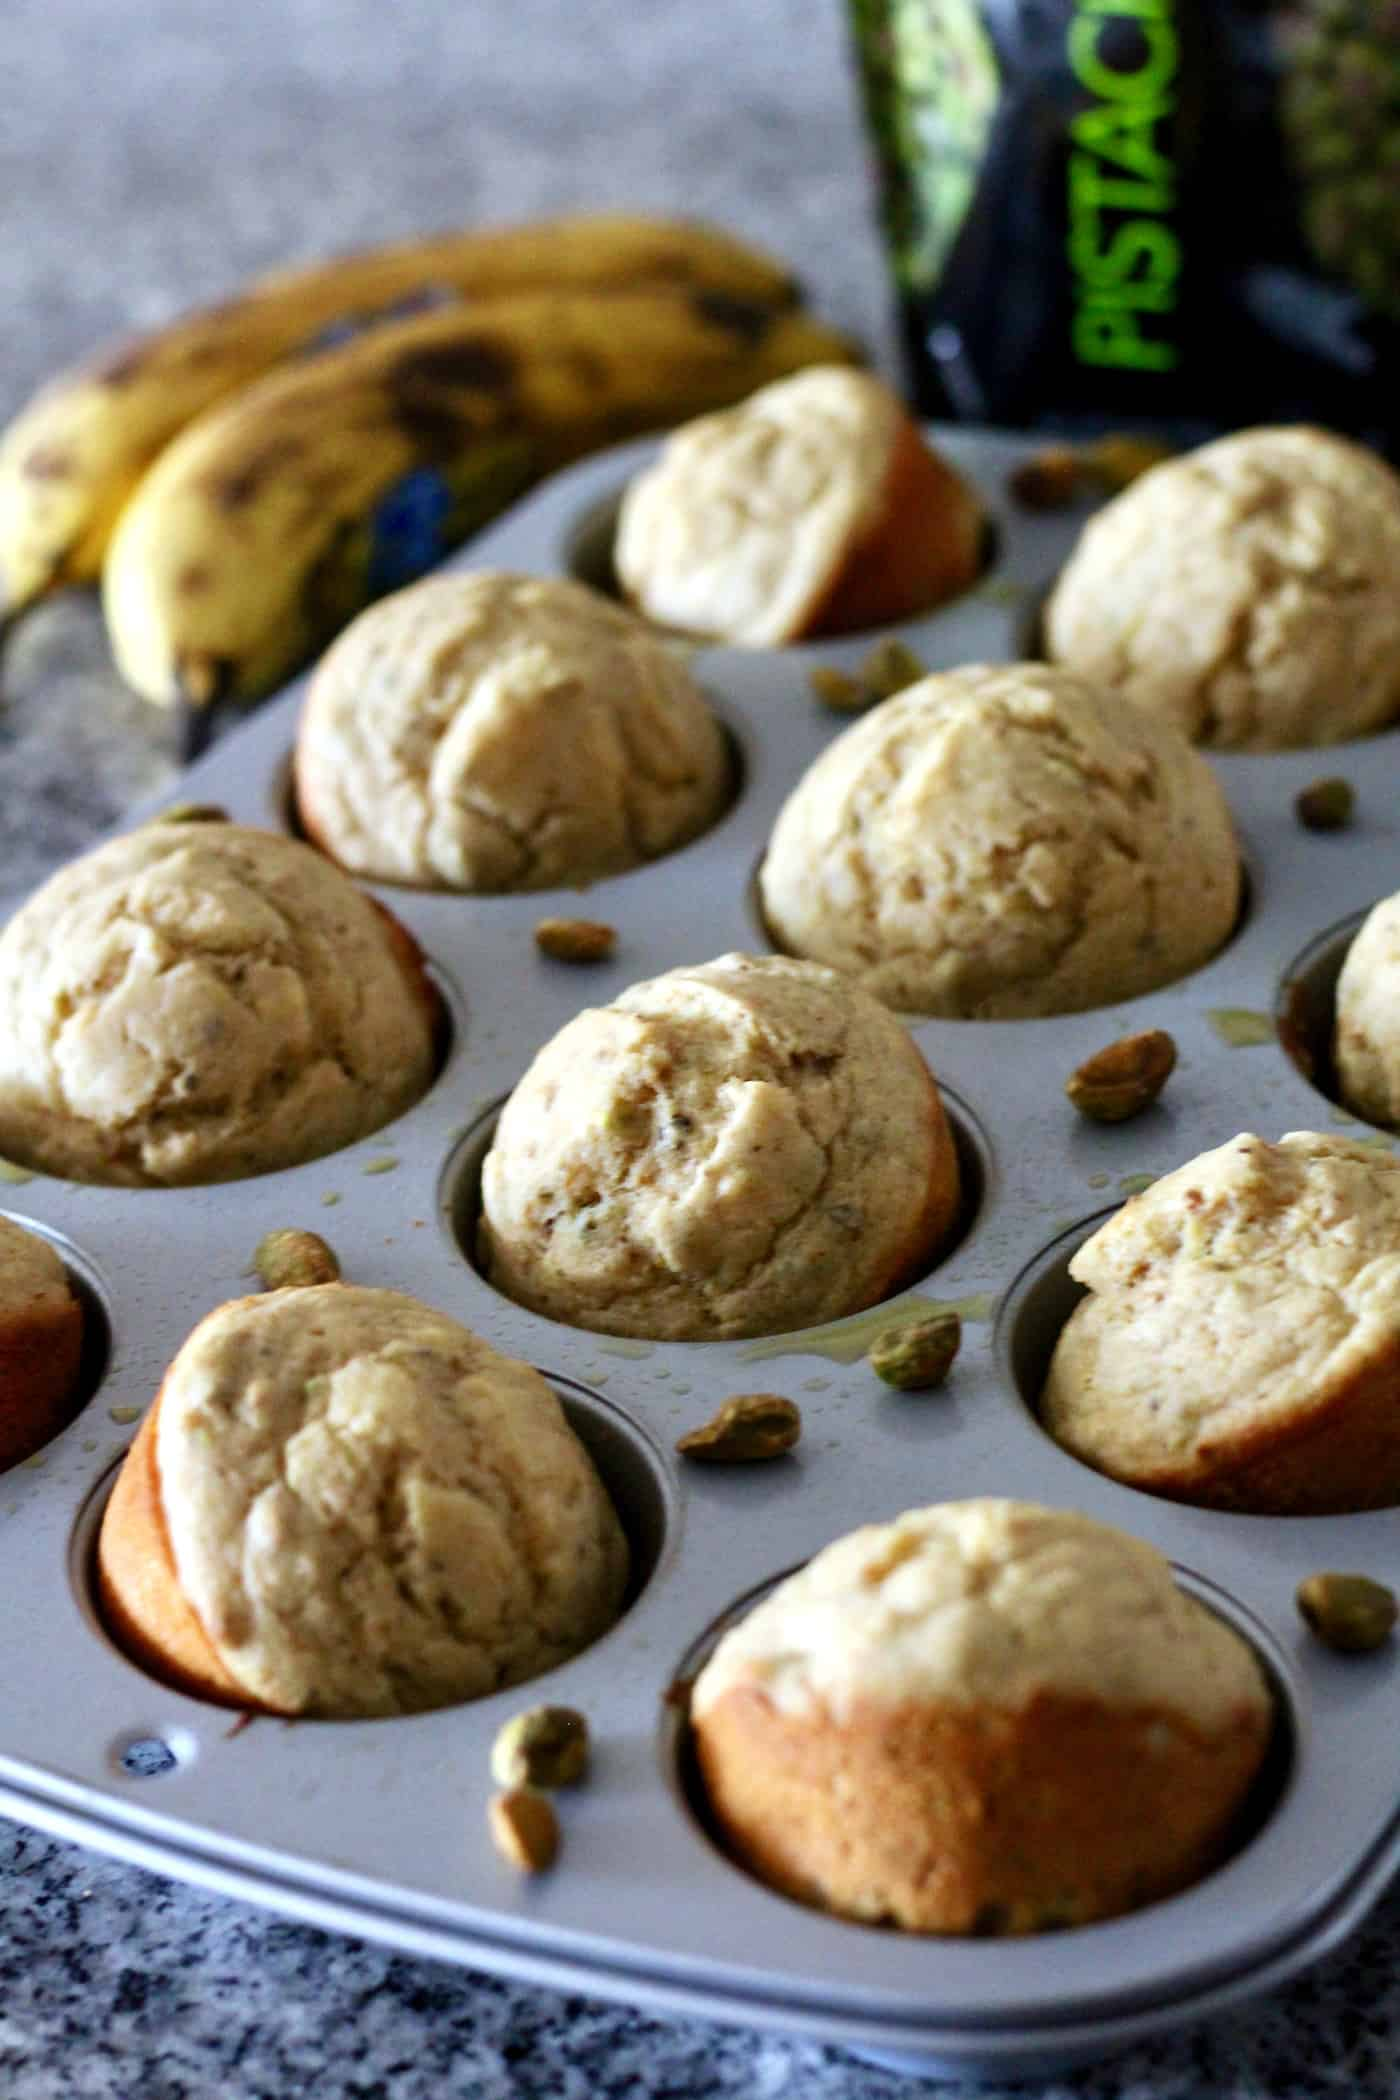 Whole Wheat Banana Pistachio Muffins